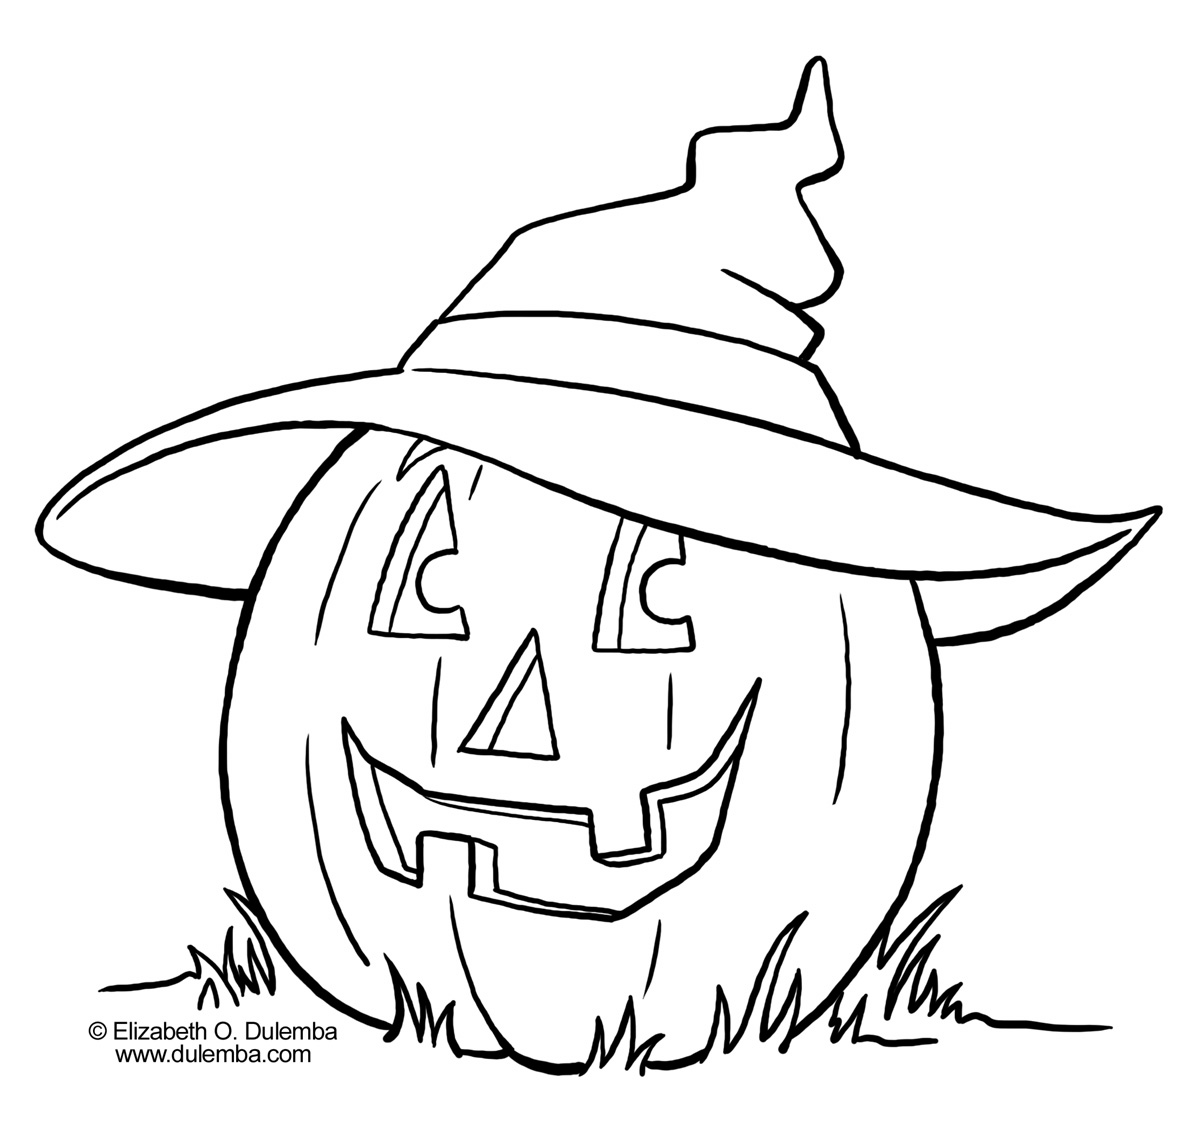 halloween pictures of pumpkins to color pumpkin coloring pages getcoloringpagescom to pumpkins color of halloween pictures